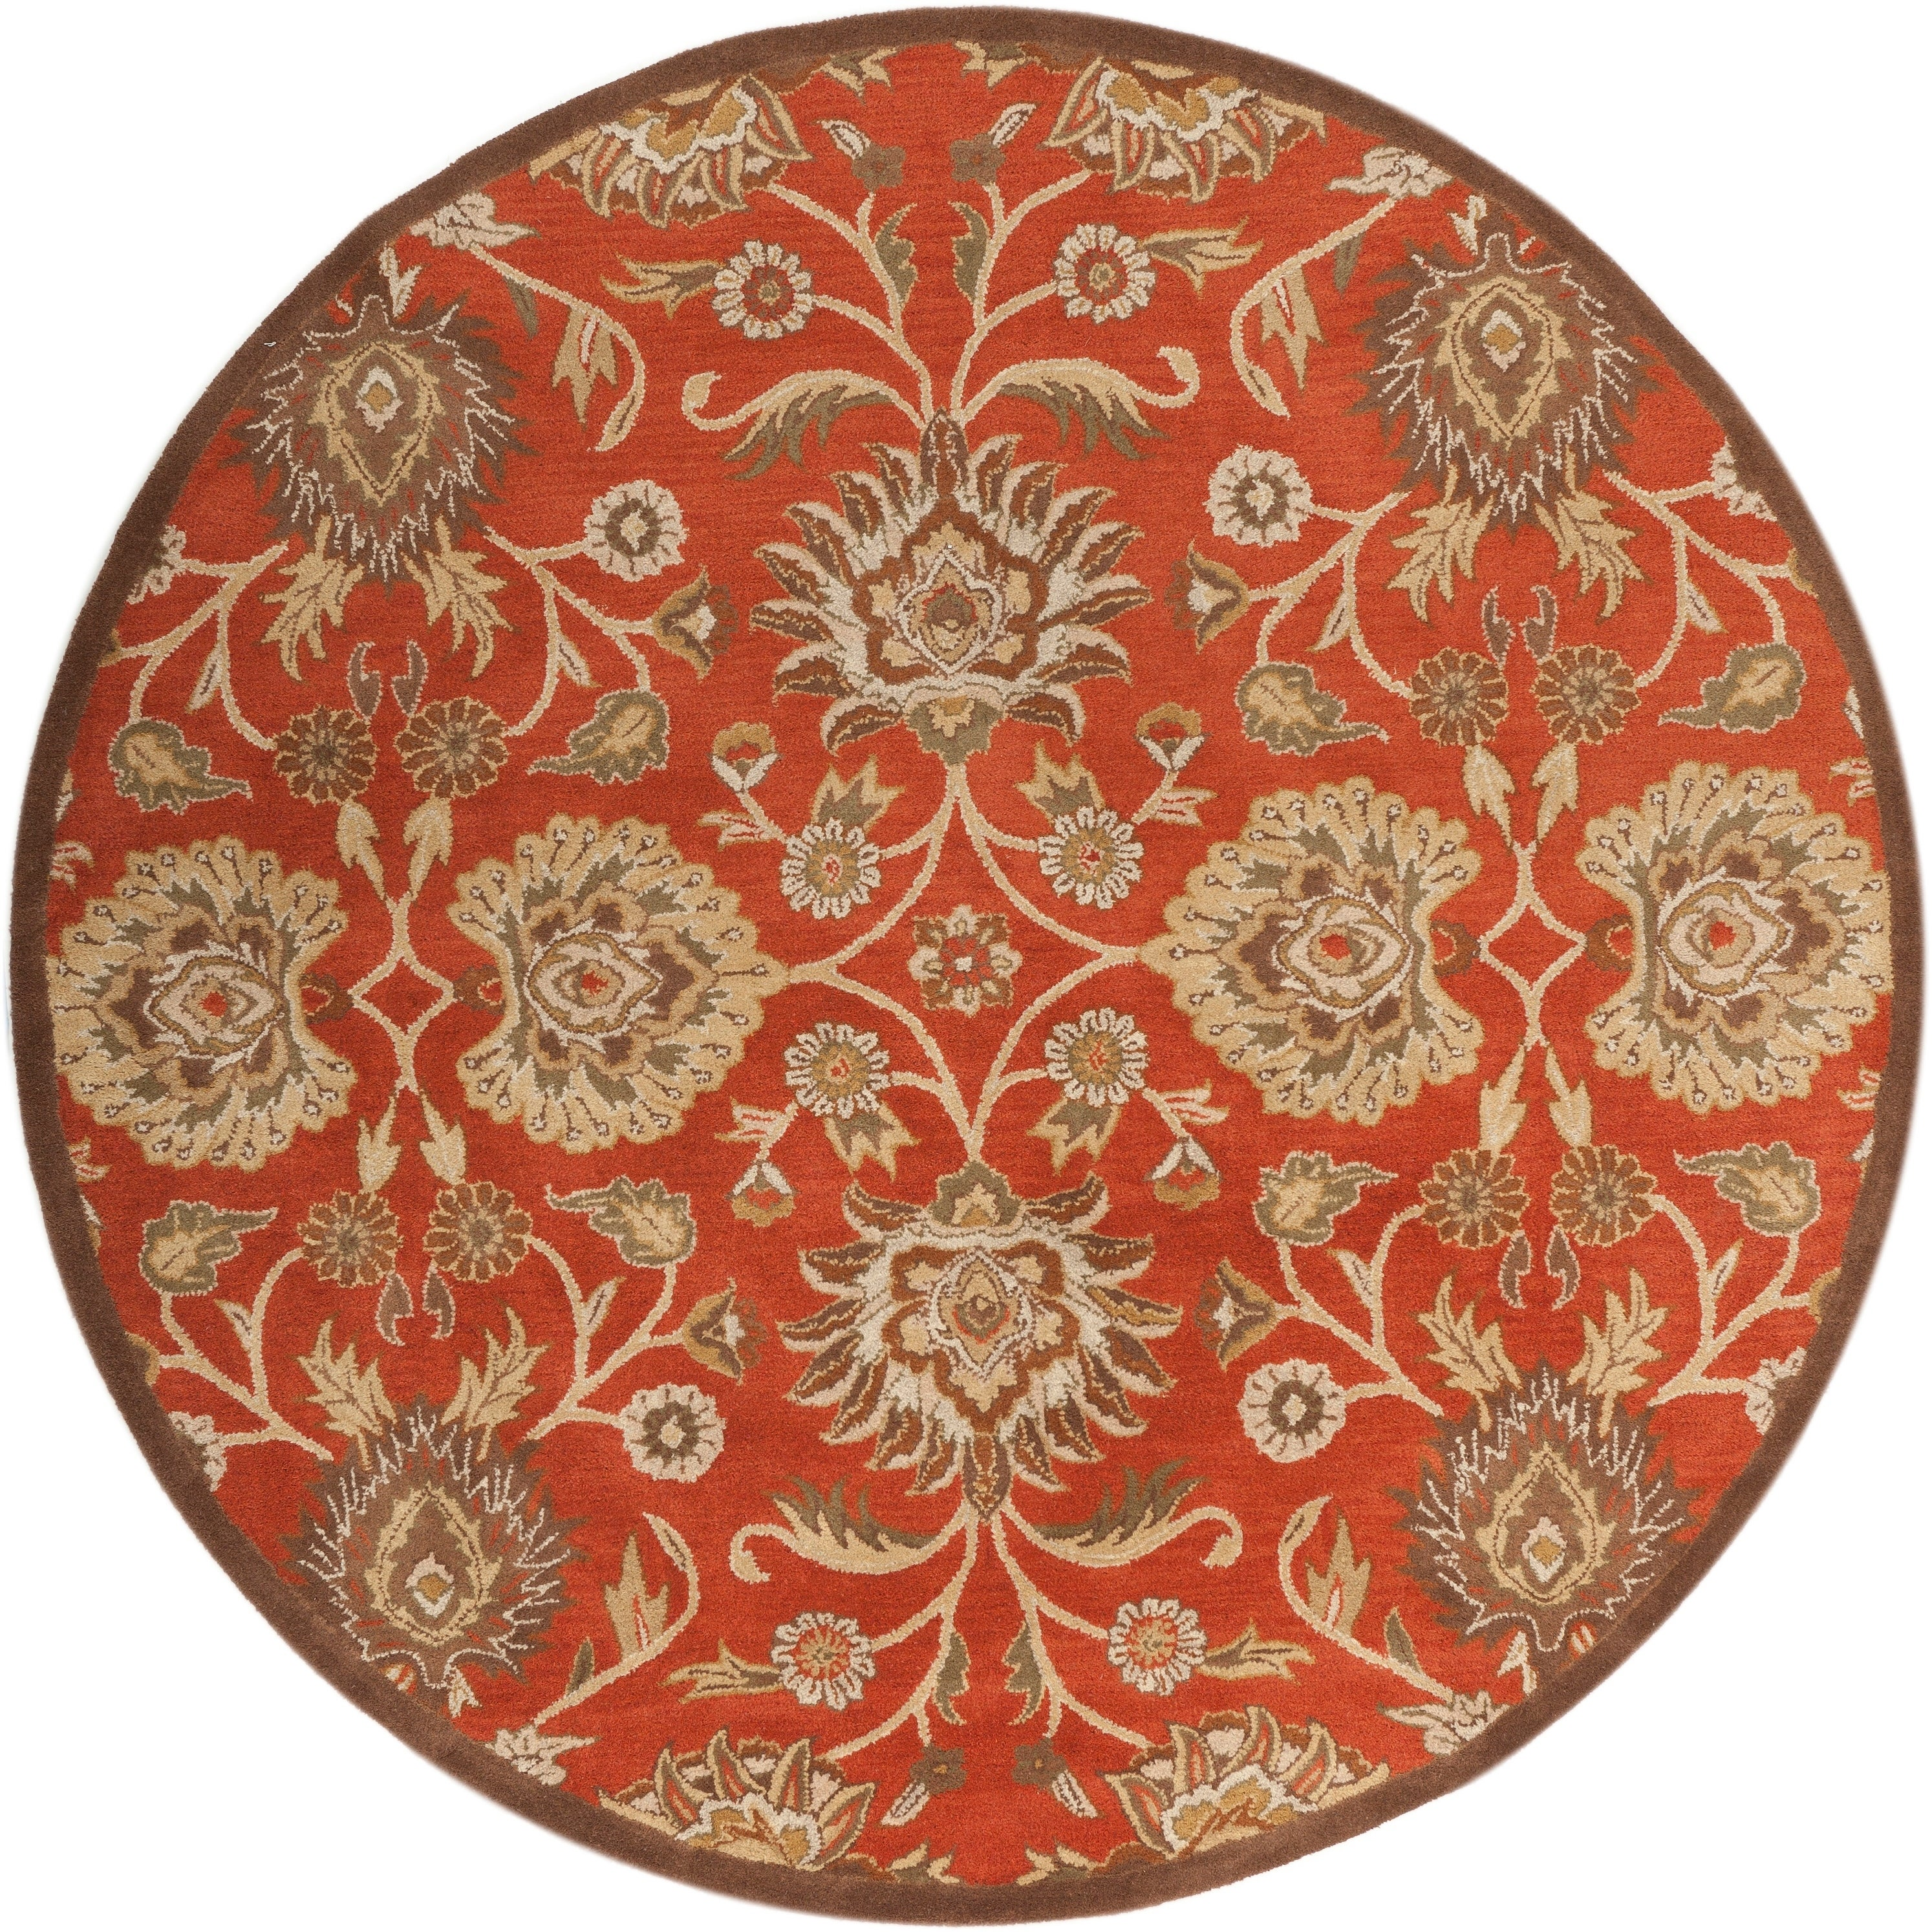 Hand Tufted Round Red Wool Area Rug 8 Round On Sale Overstock 7278740